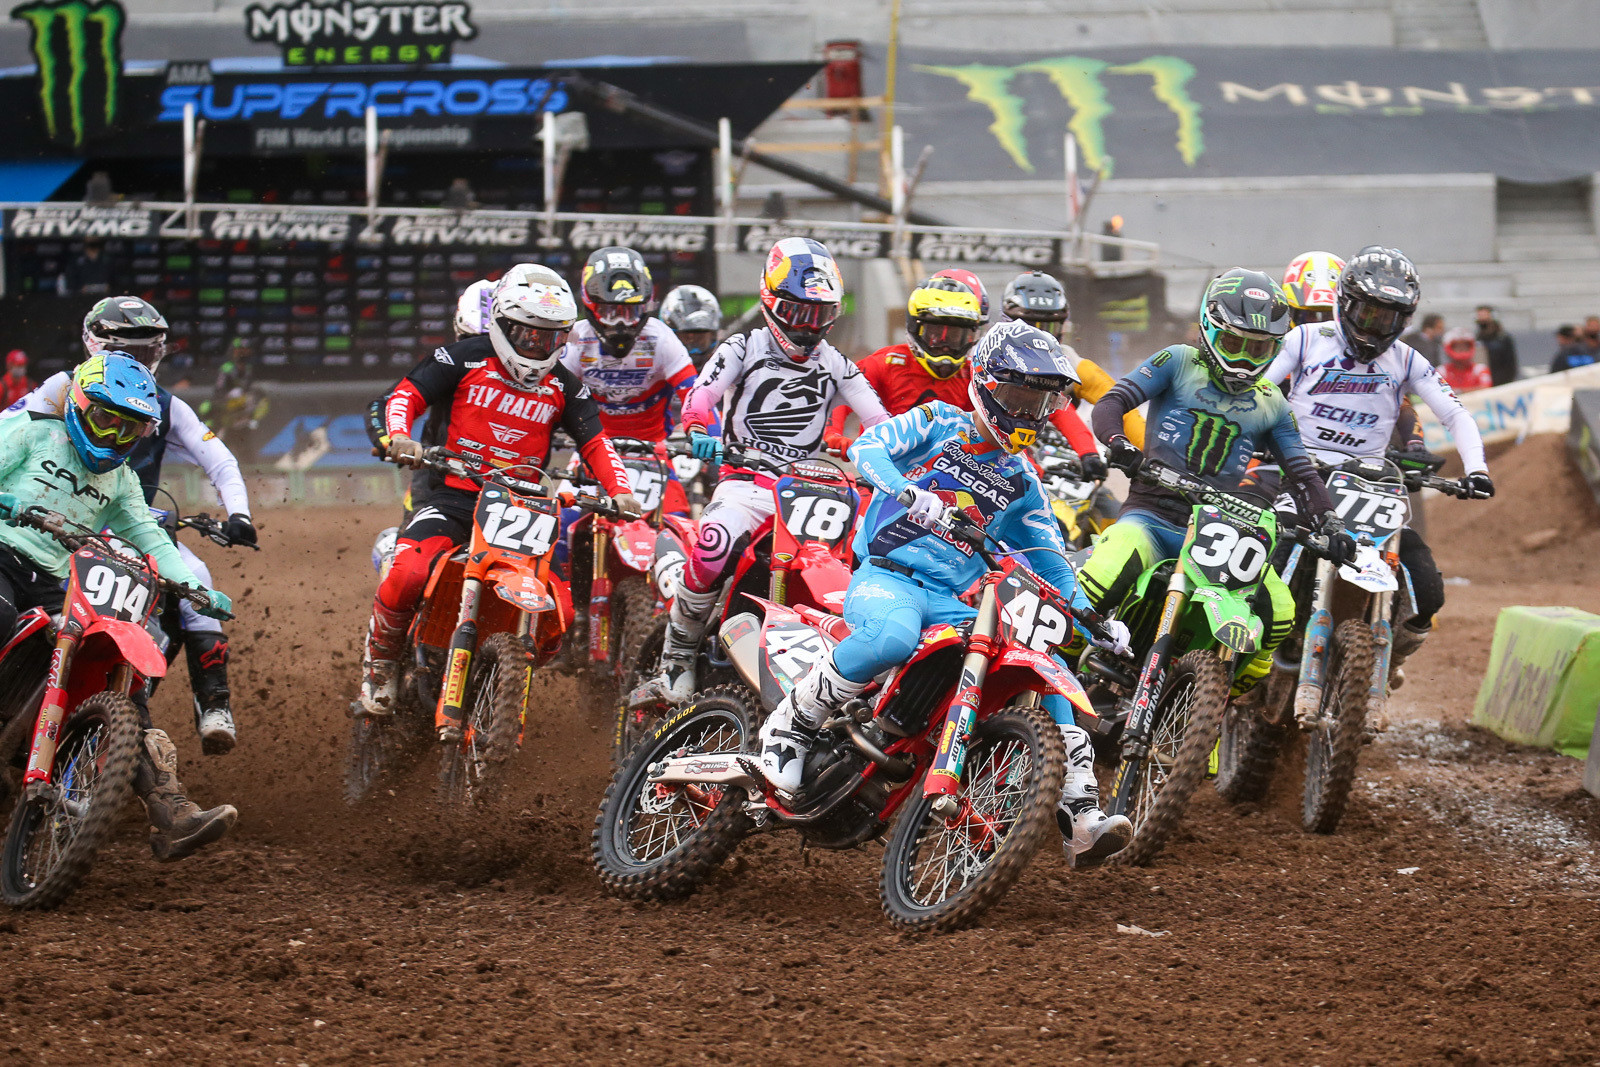 Michael Mosiman leading into the first turn of the 250 main.